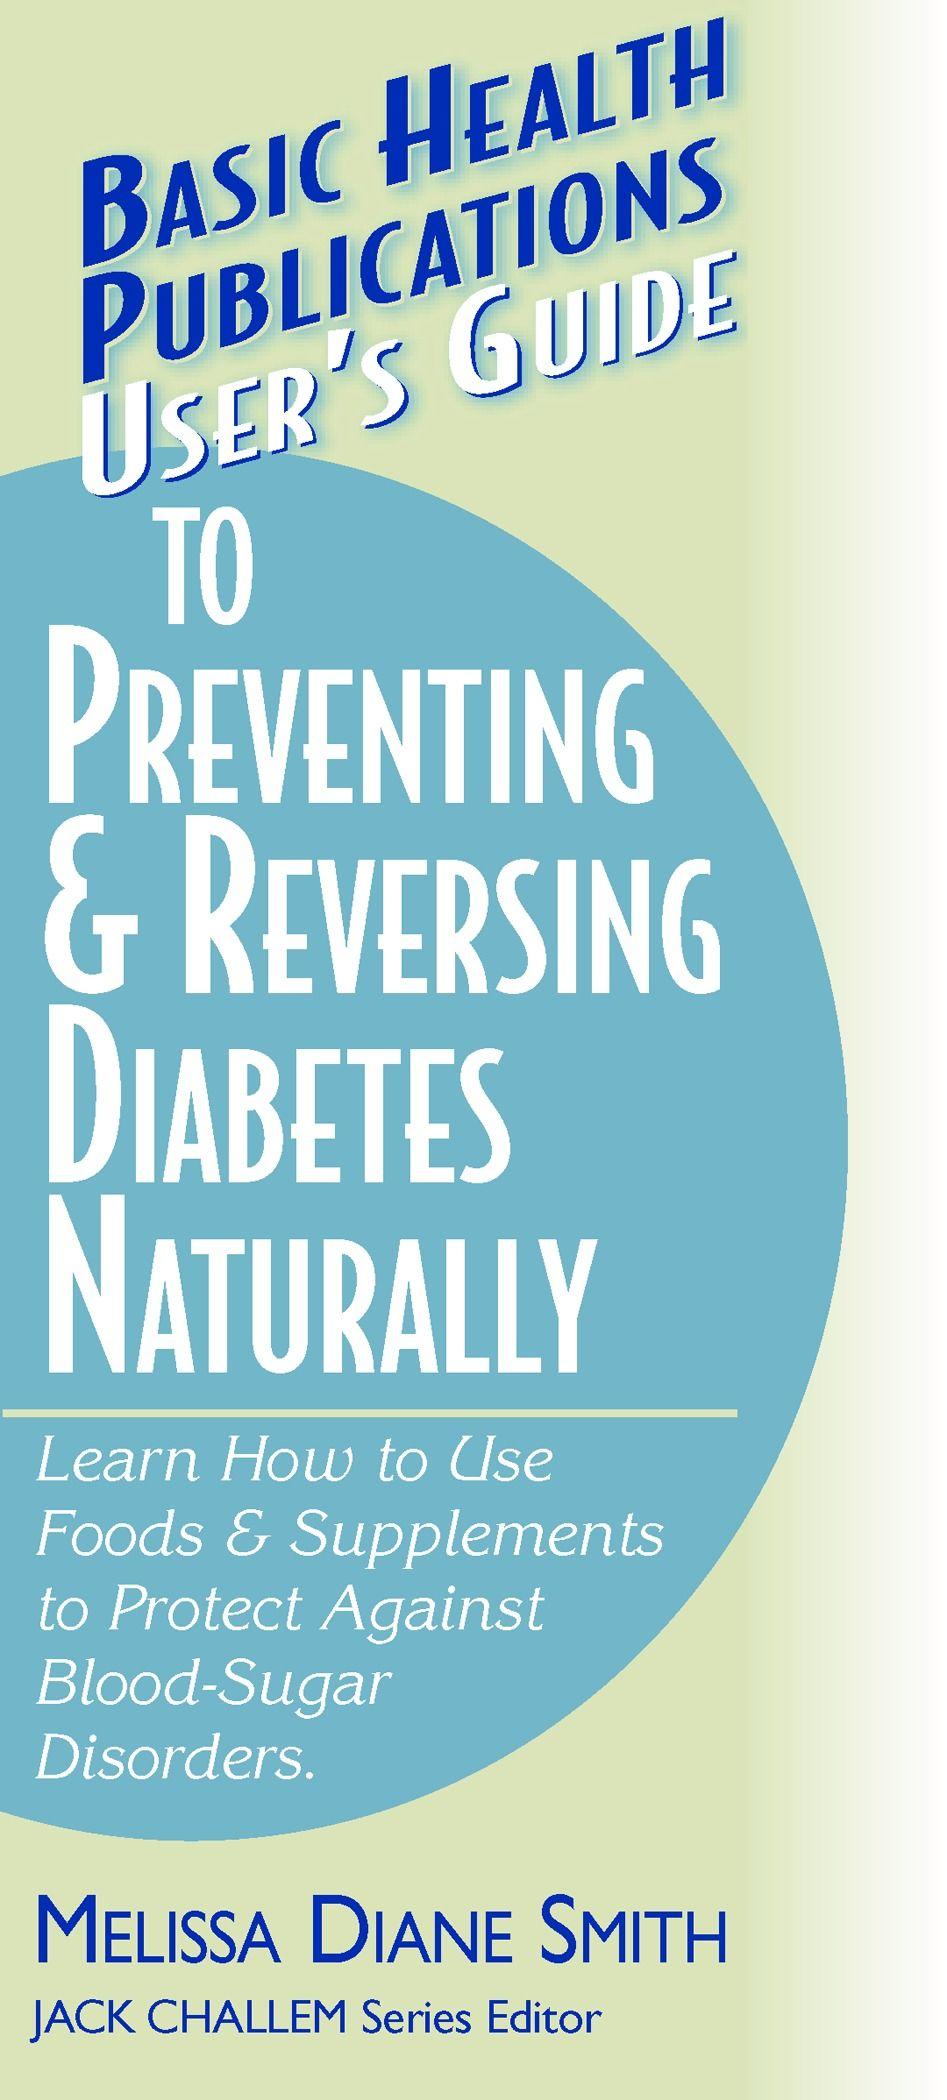 User's Guide to Preventing & Reversing Diabetes Naturally (Basic Health Publications User's Guide)